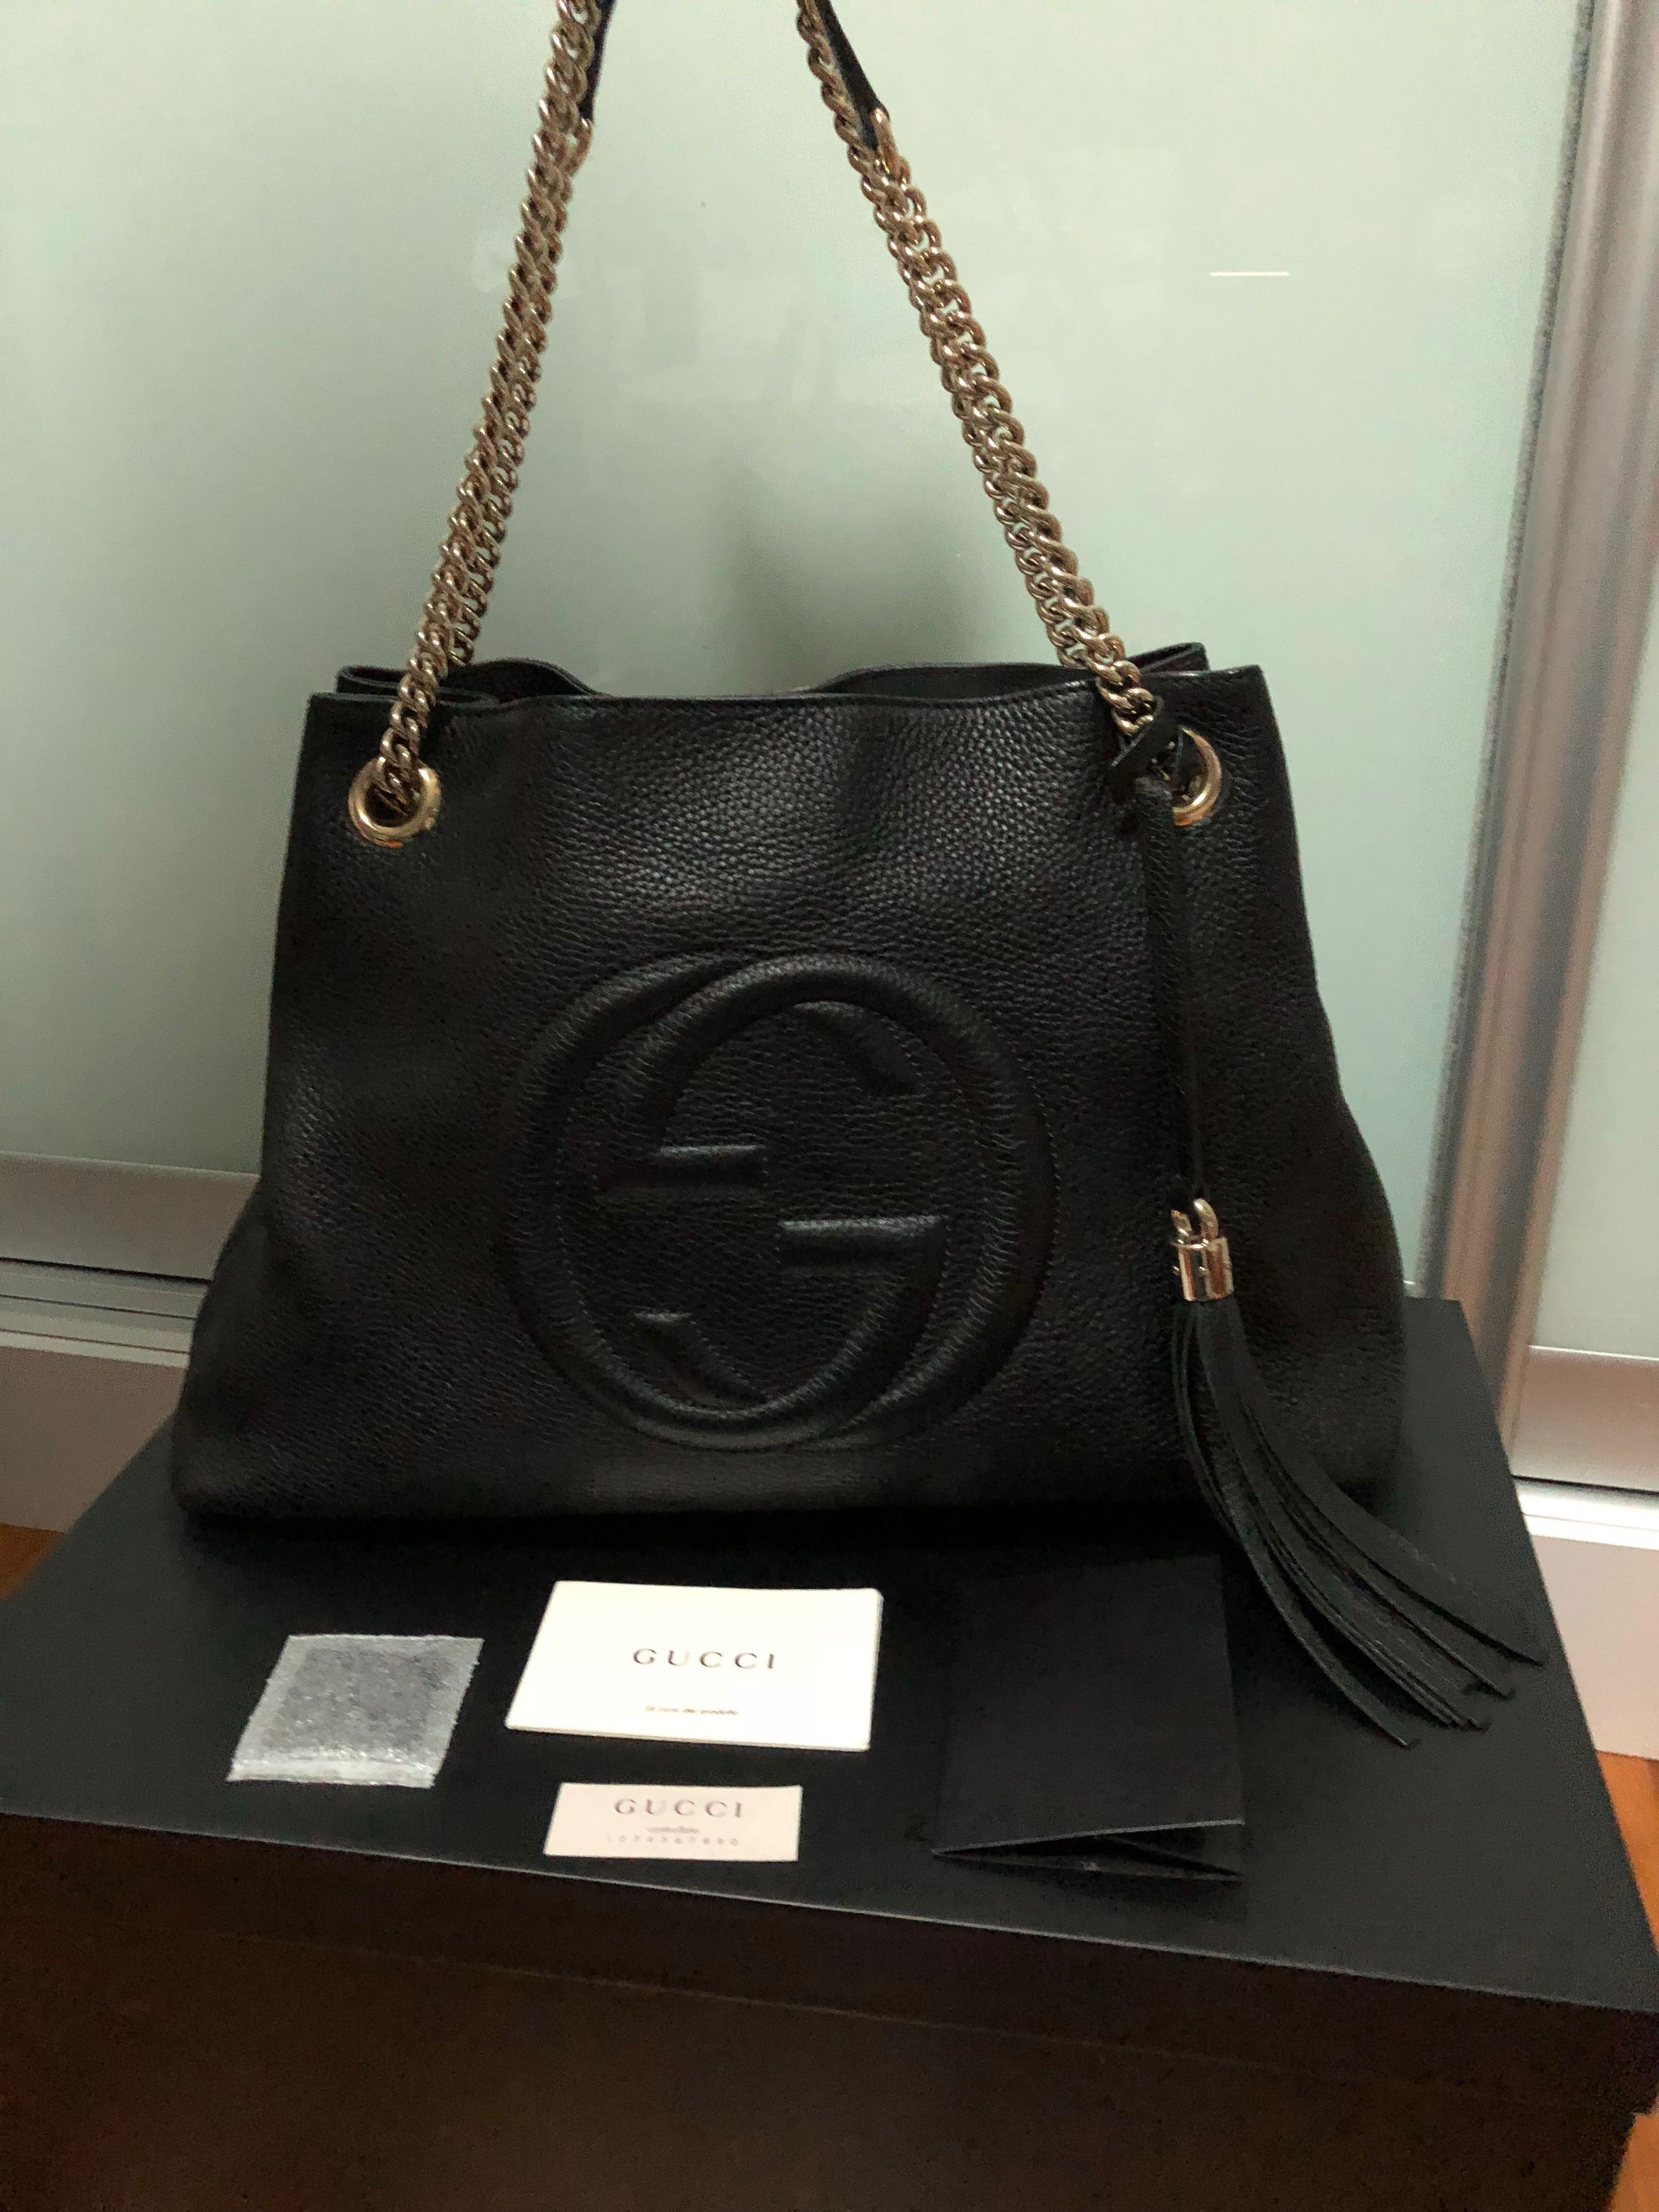 a5de653d7 Authentic Gucci soho chain bag, Luxury, Bags & Wallets, Sling Bags on  Carousell